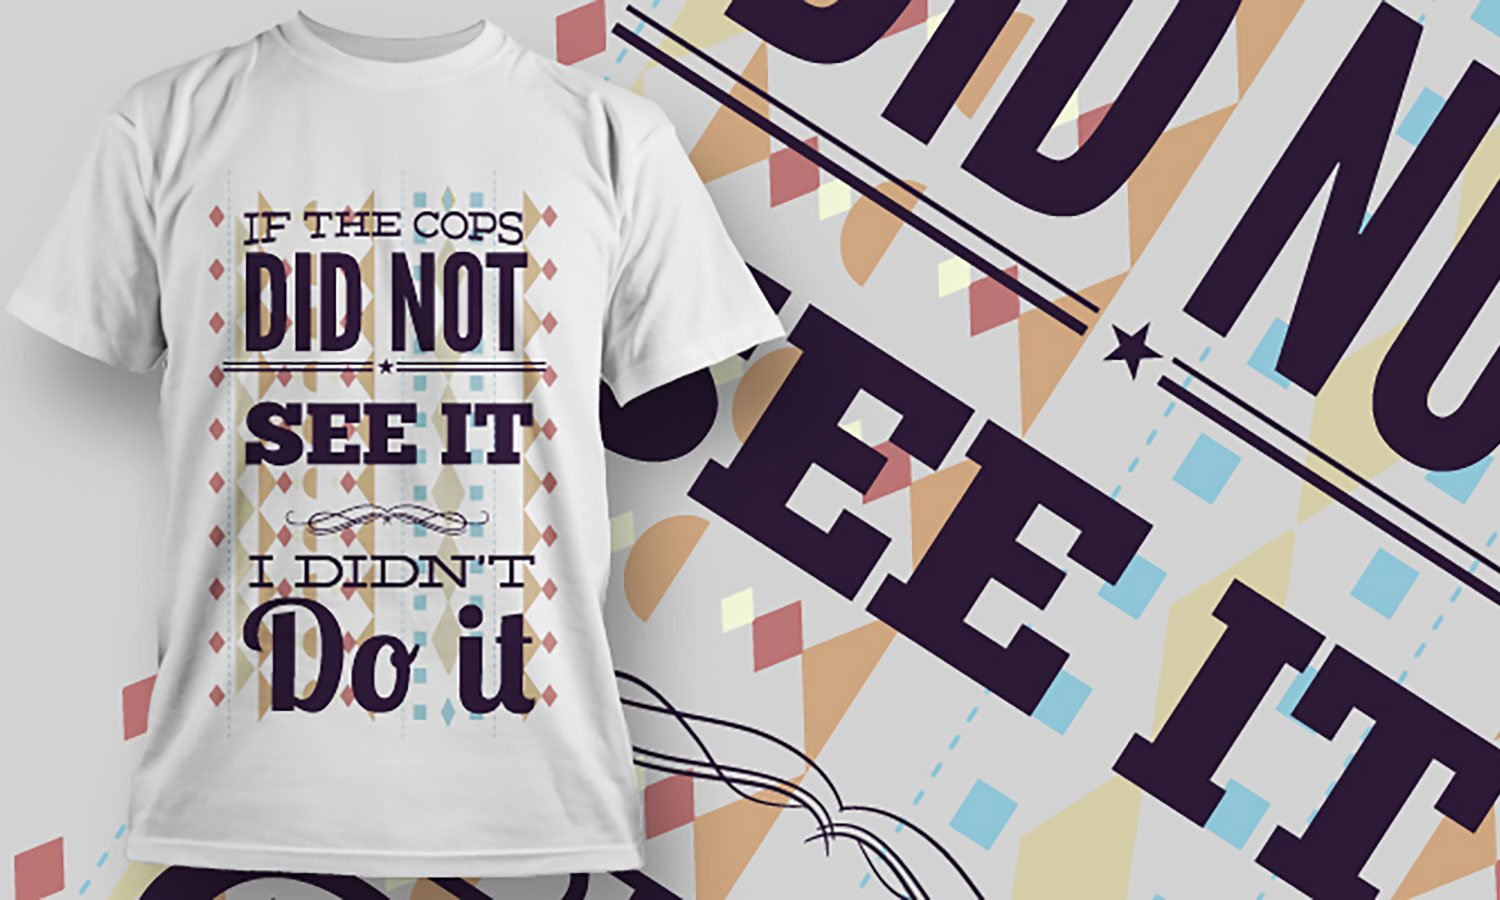 Did Not See It - Printed T-Shirt for Men, Women and Kids - TS378